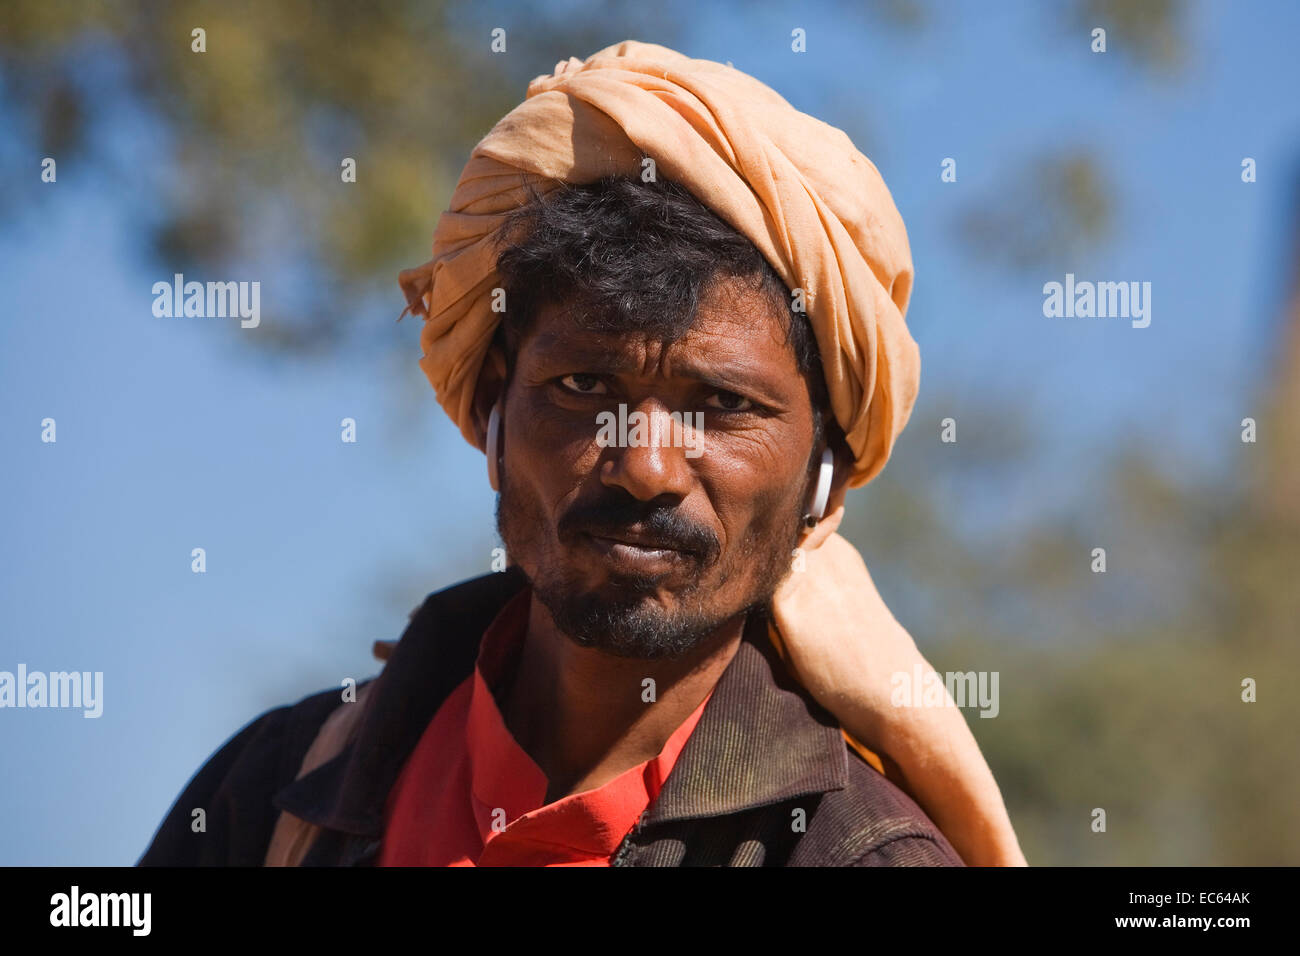 indian with turban, North India, India, Asia - Stock Image